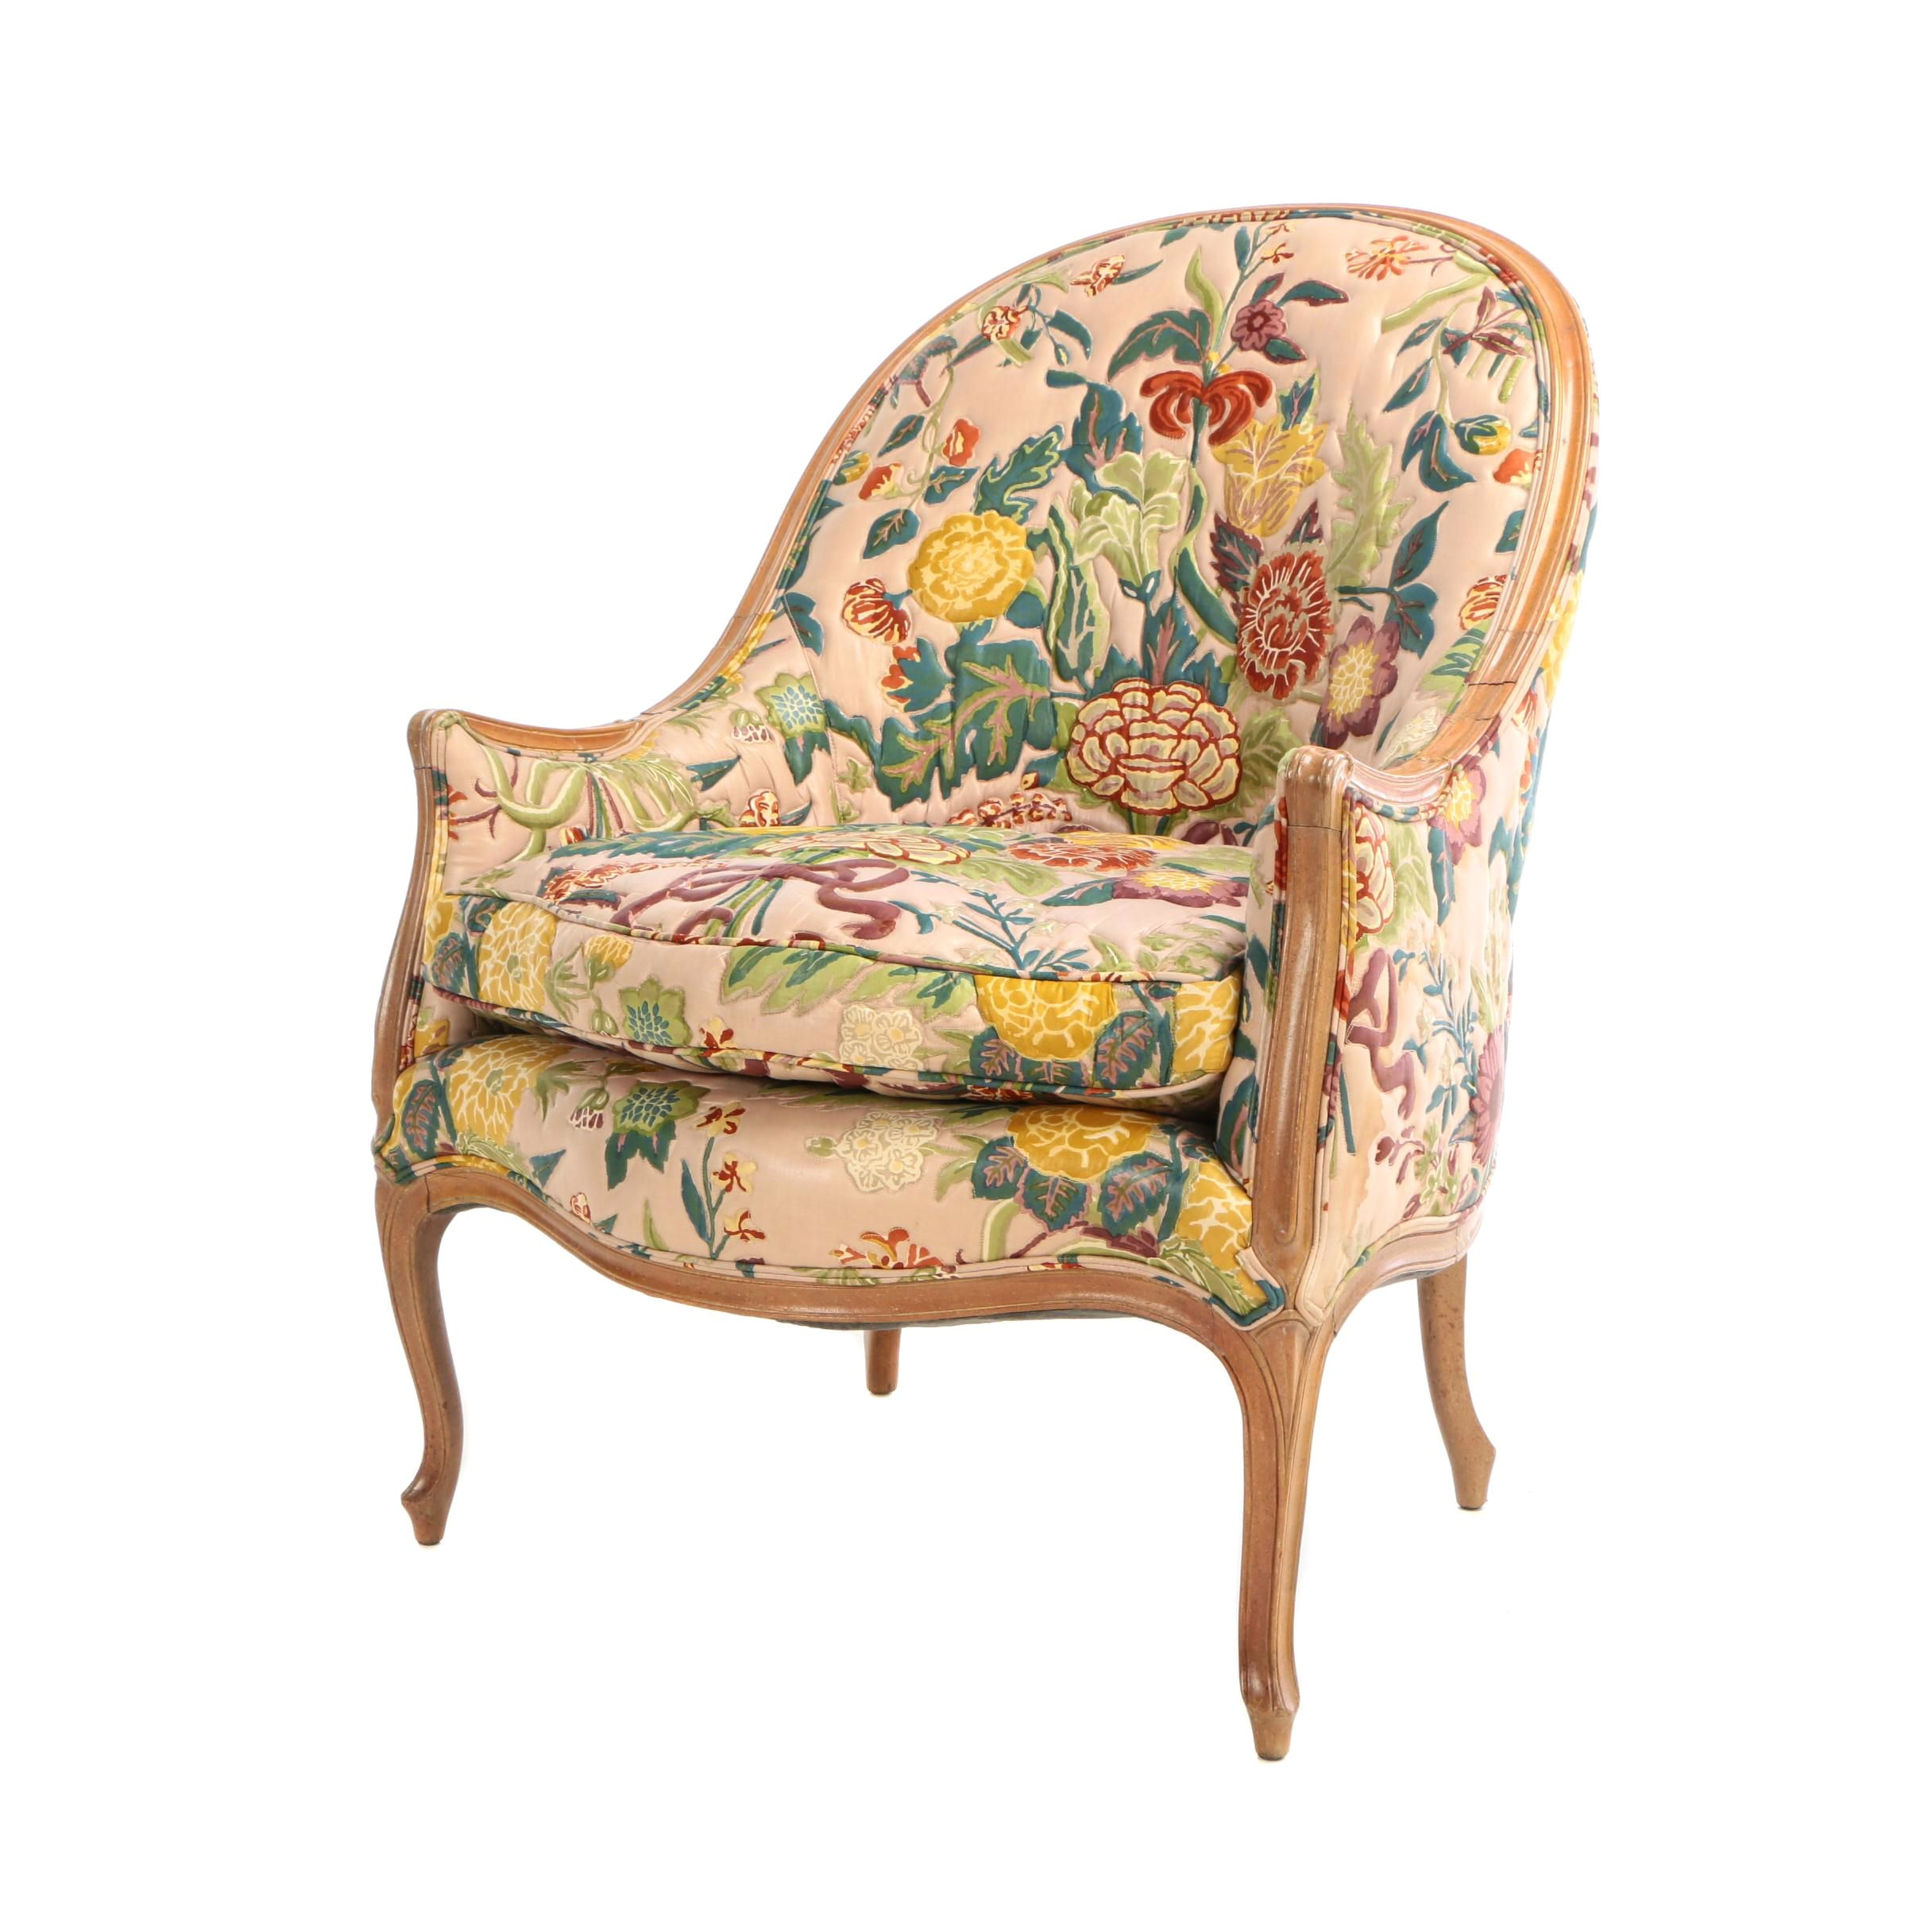 Louis XV Style Carved Blondewood and Floral-Upholstered Bergère, 20th Century